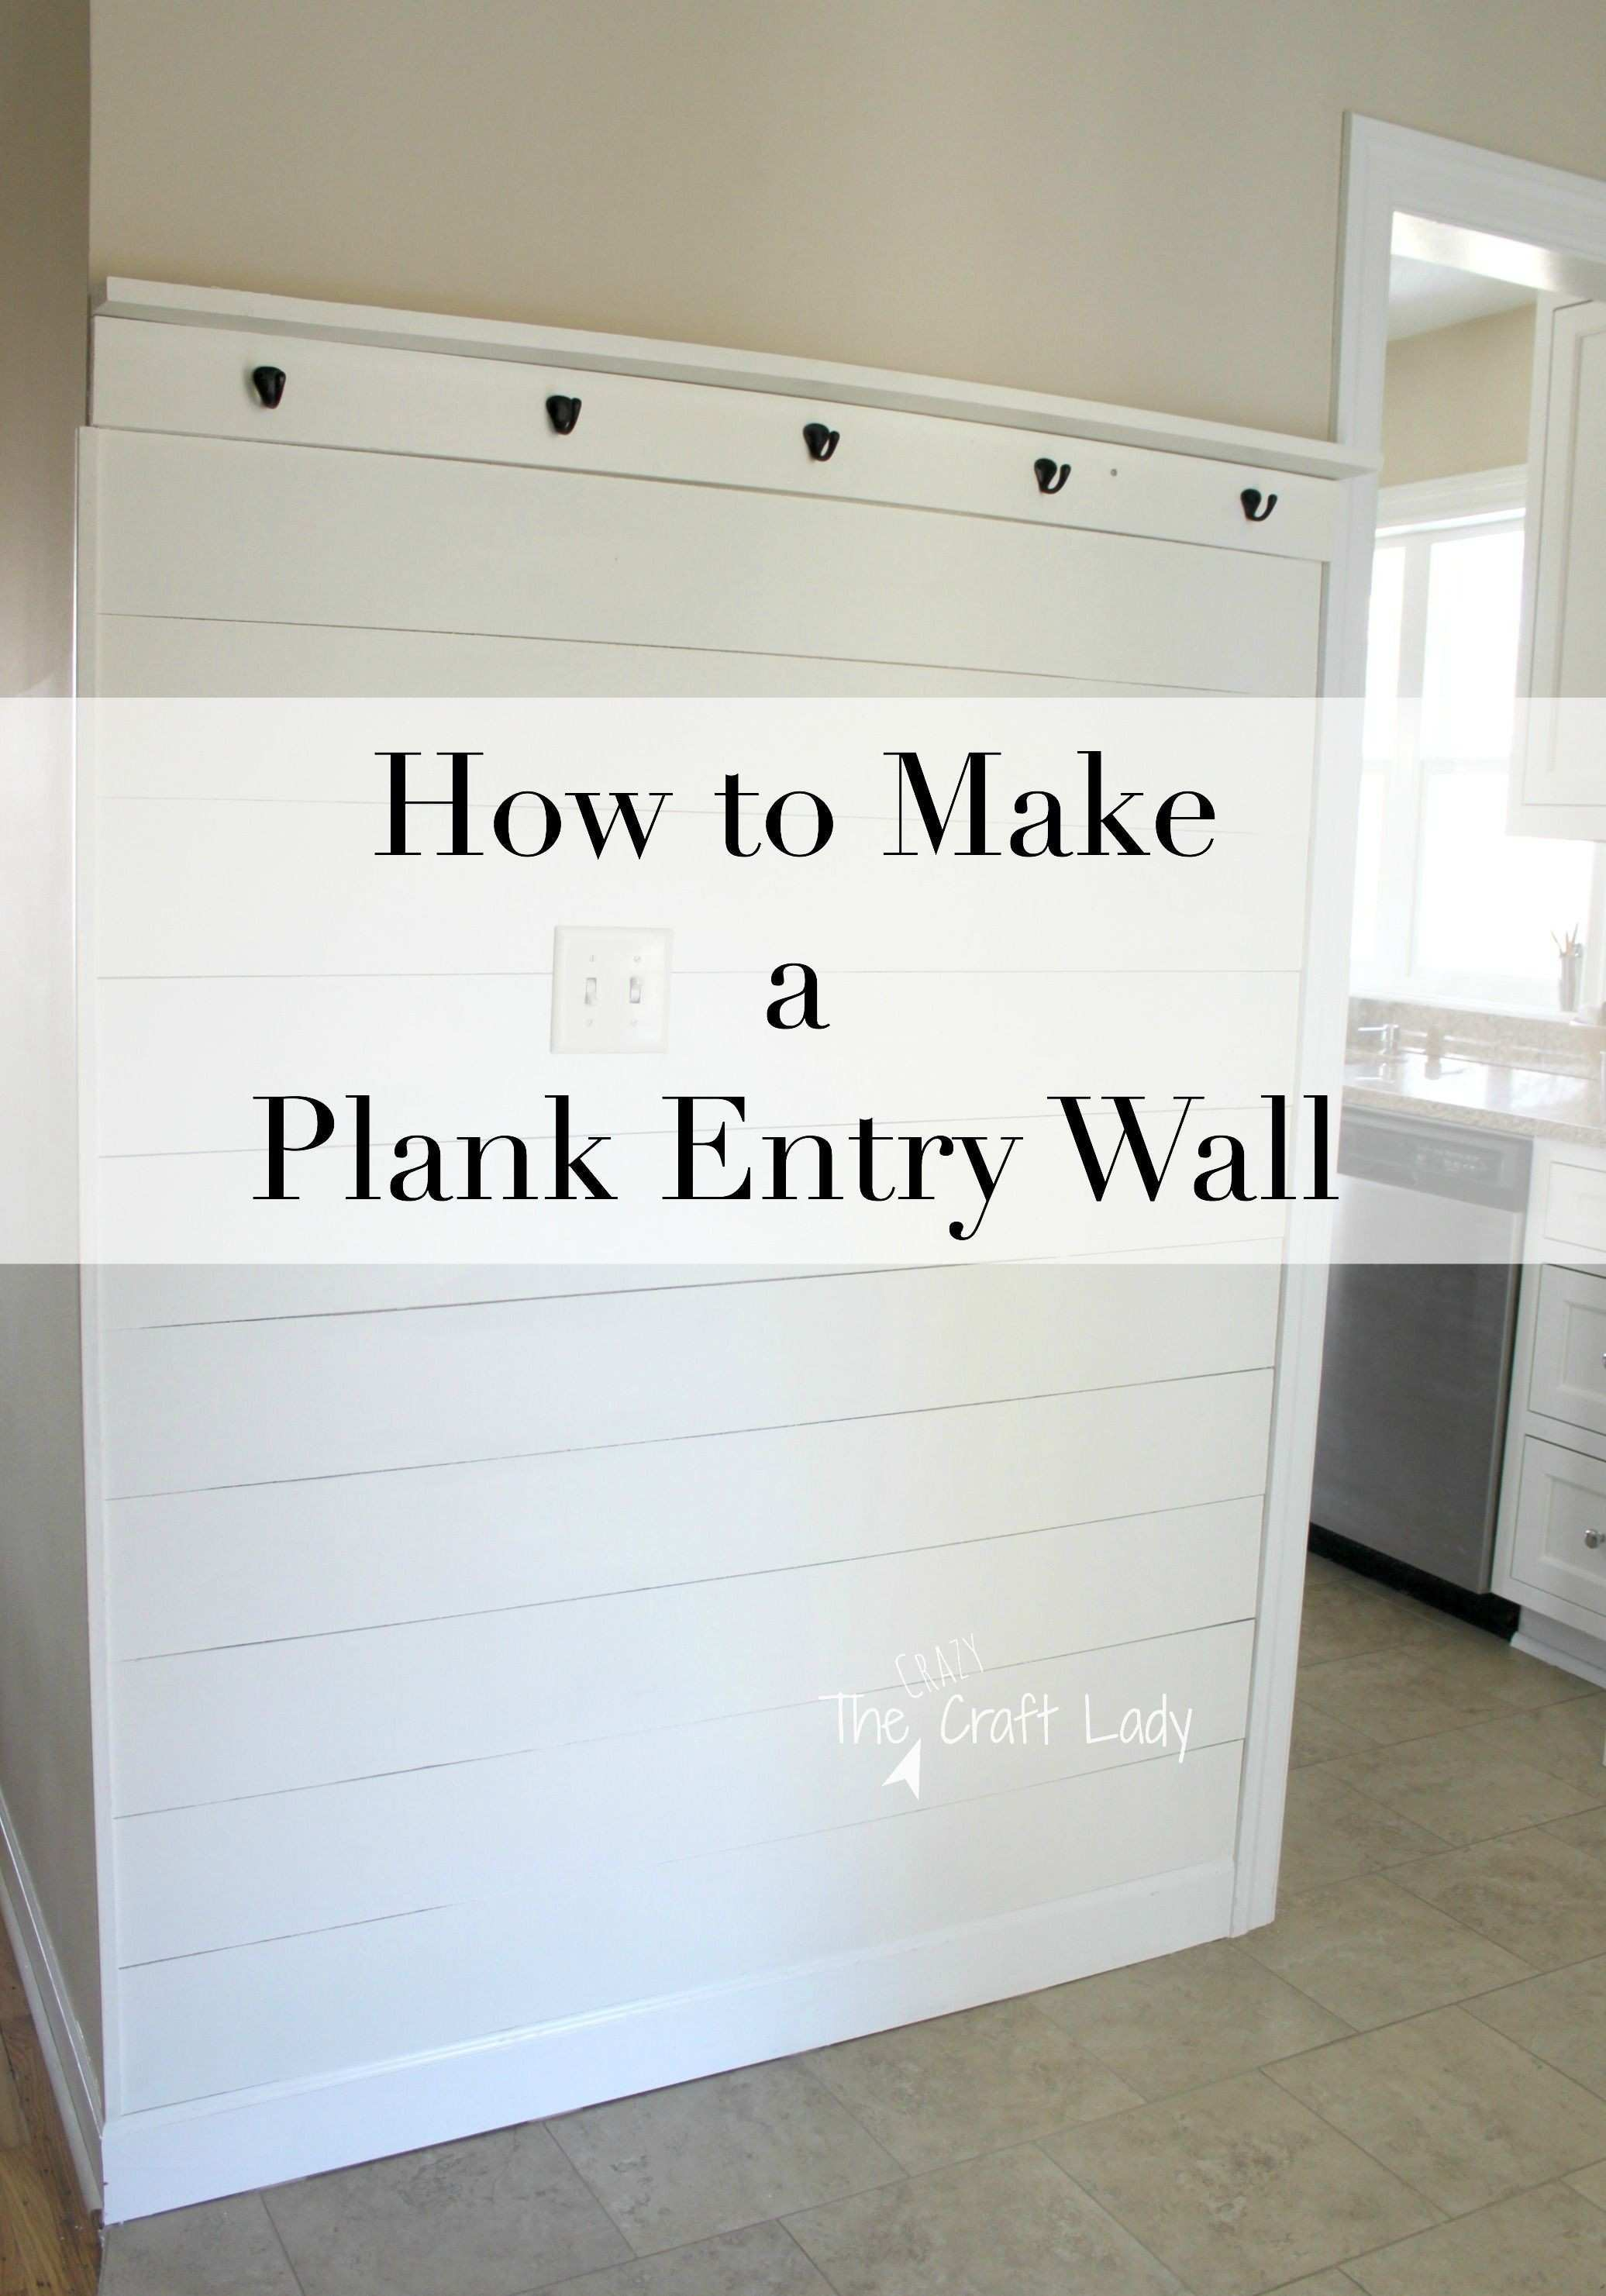 How to Make a Plank Entry Wall